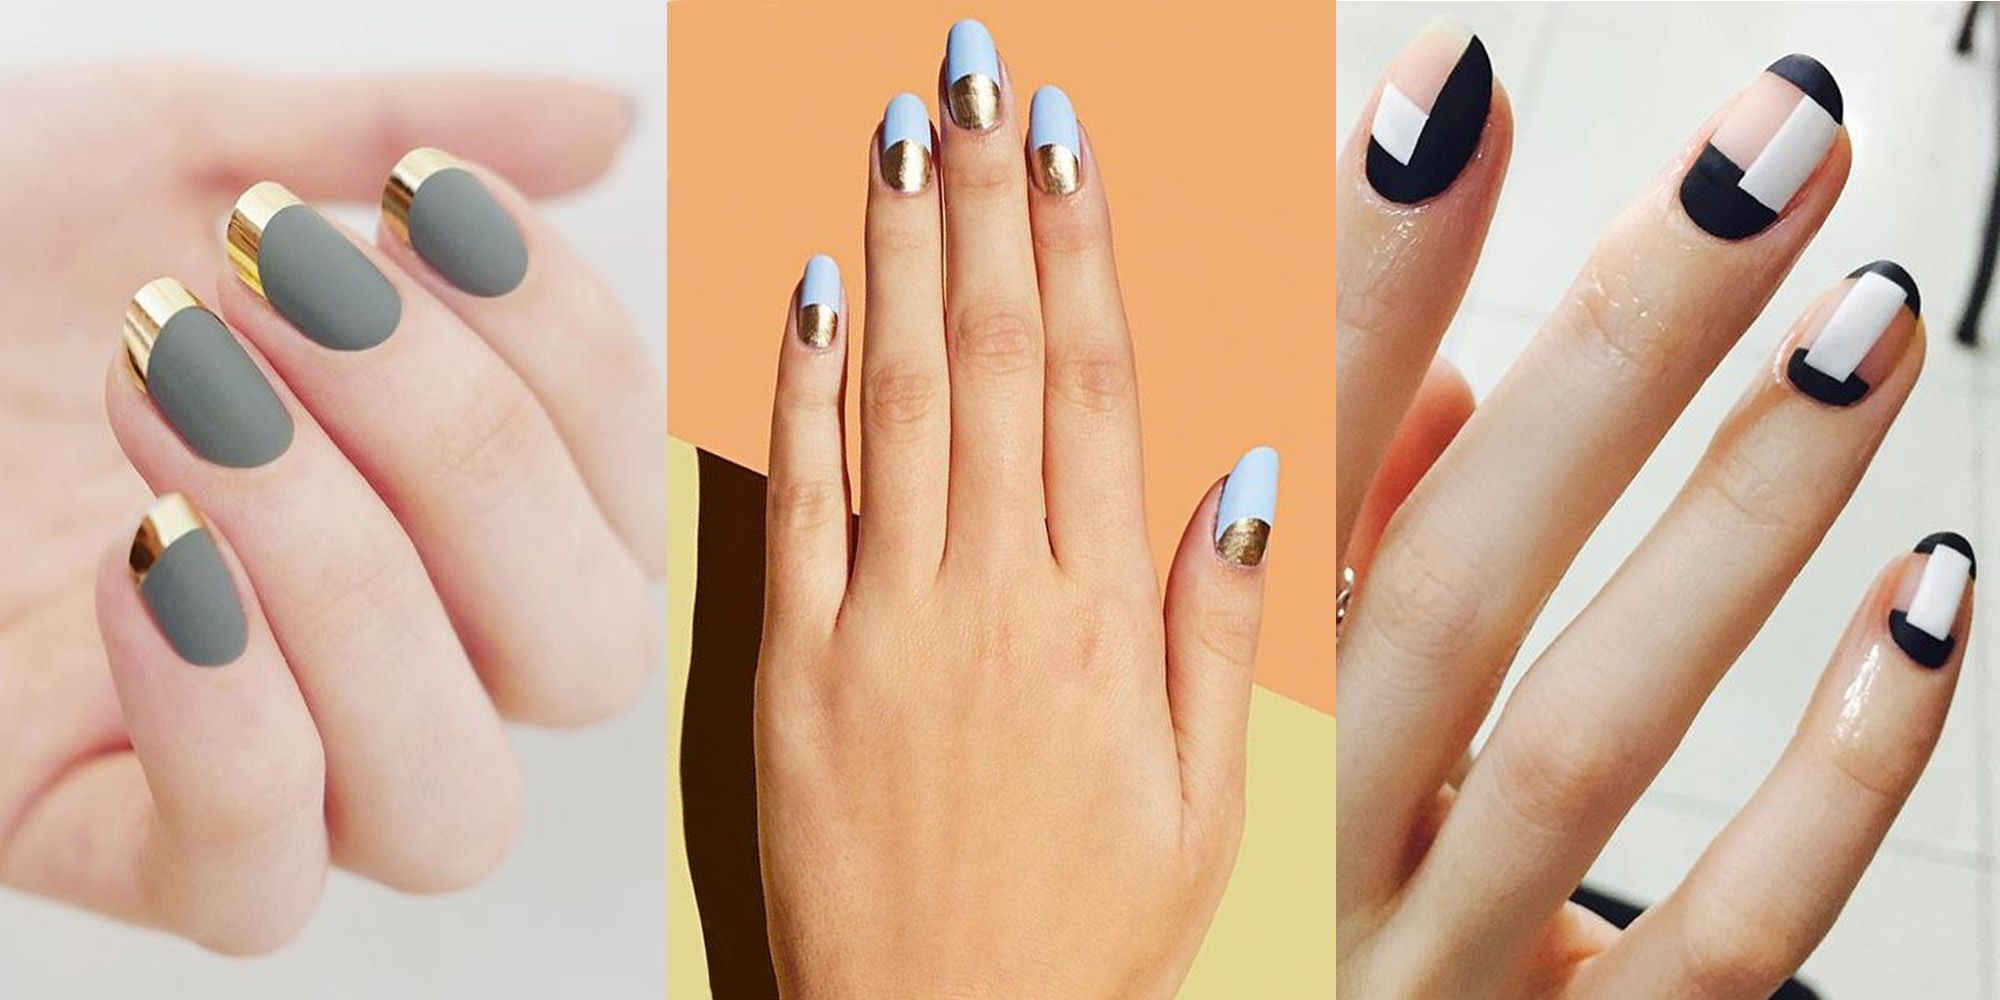 Matte Nail Designs - Matte Nail Inspiration from Instagram